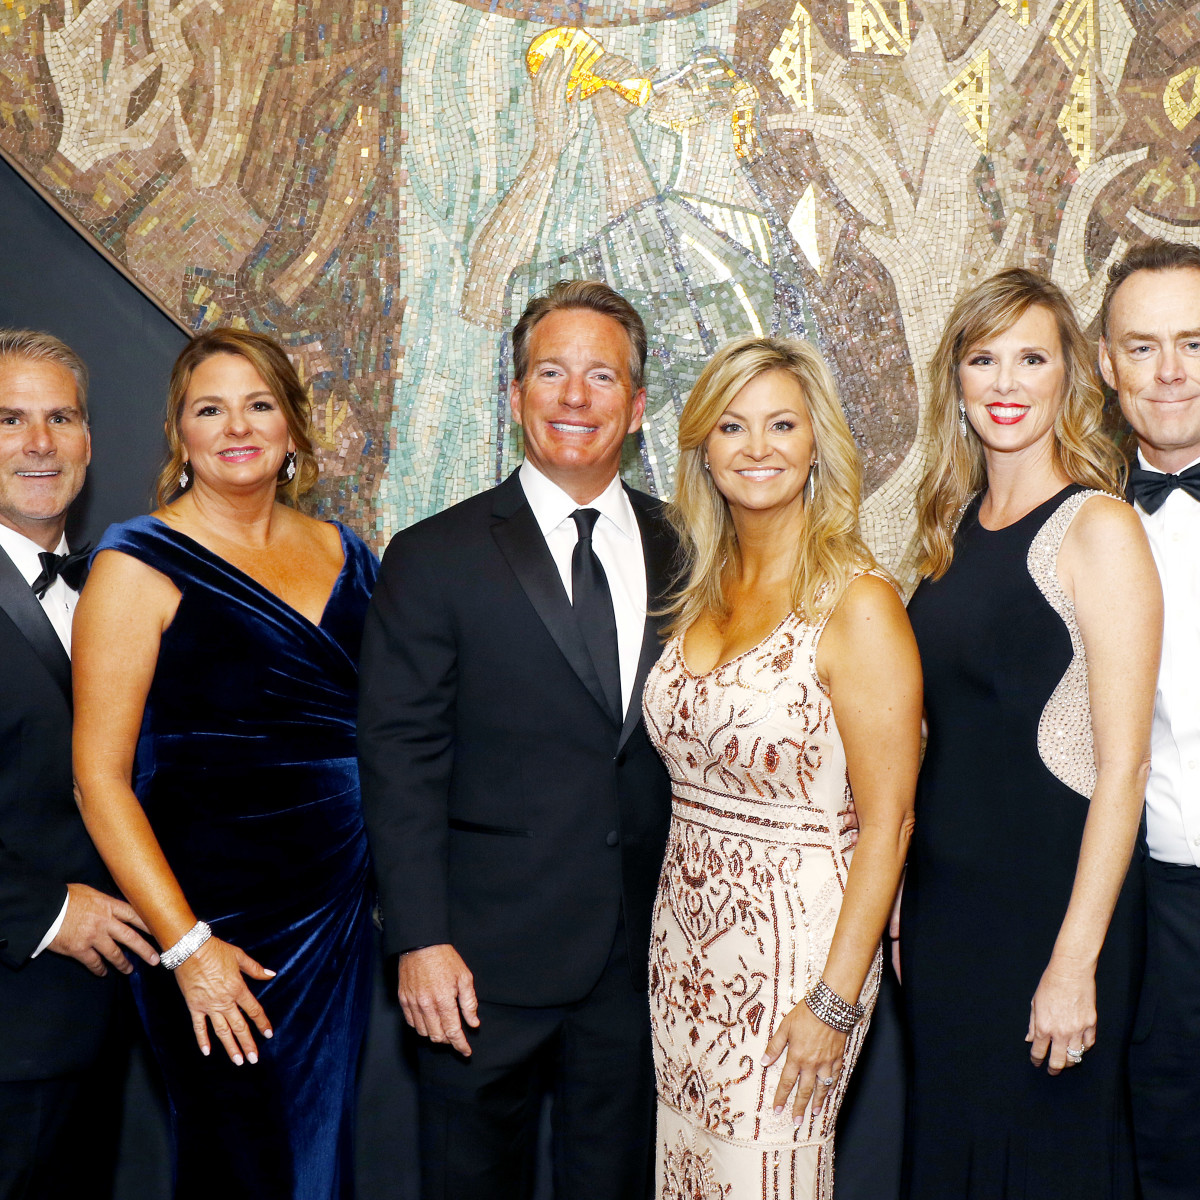 Grady Reynolds, Laura Reynolds, Chris Young, Amy Young, Ben Peters, Crissy Peters